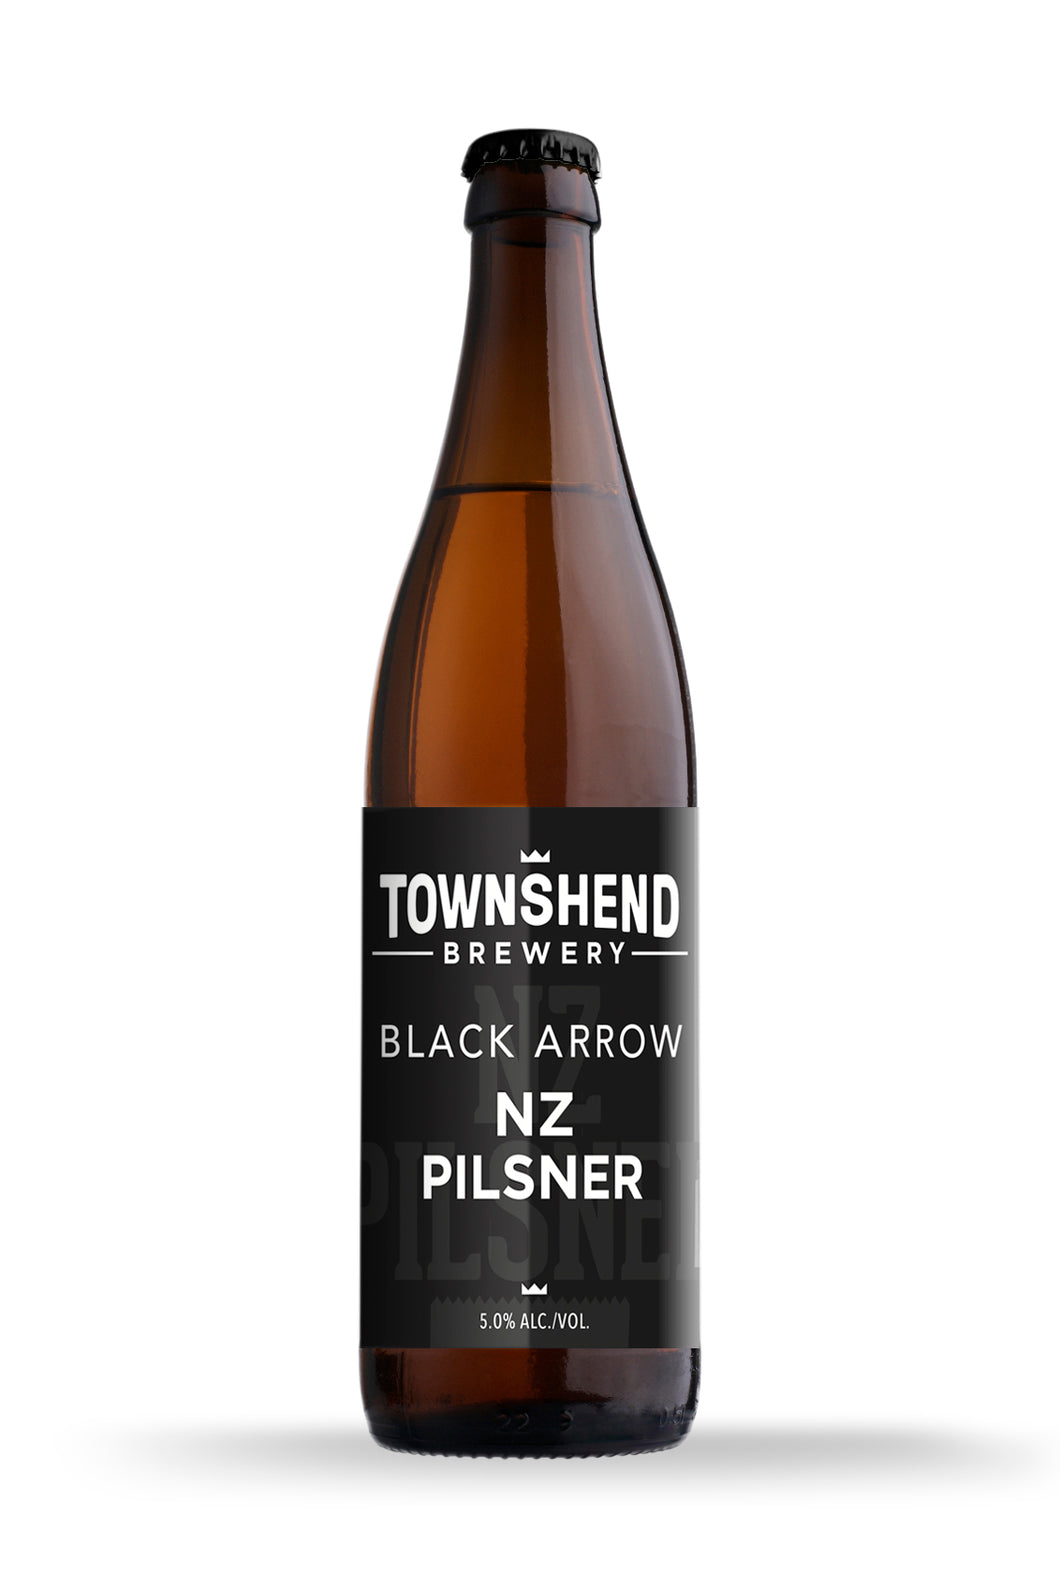 Townshend Black Arrow Pilsner